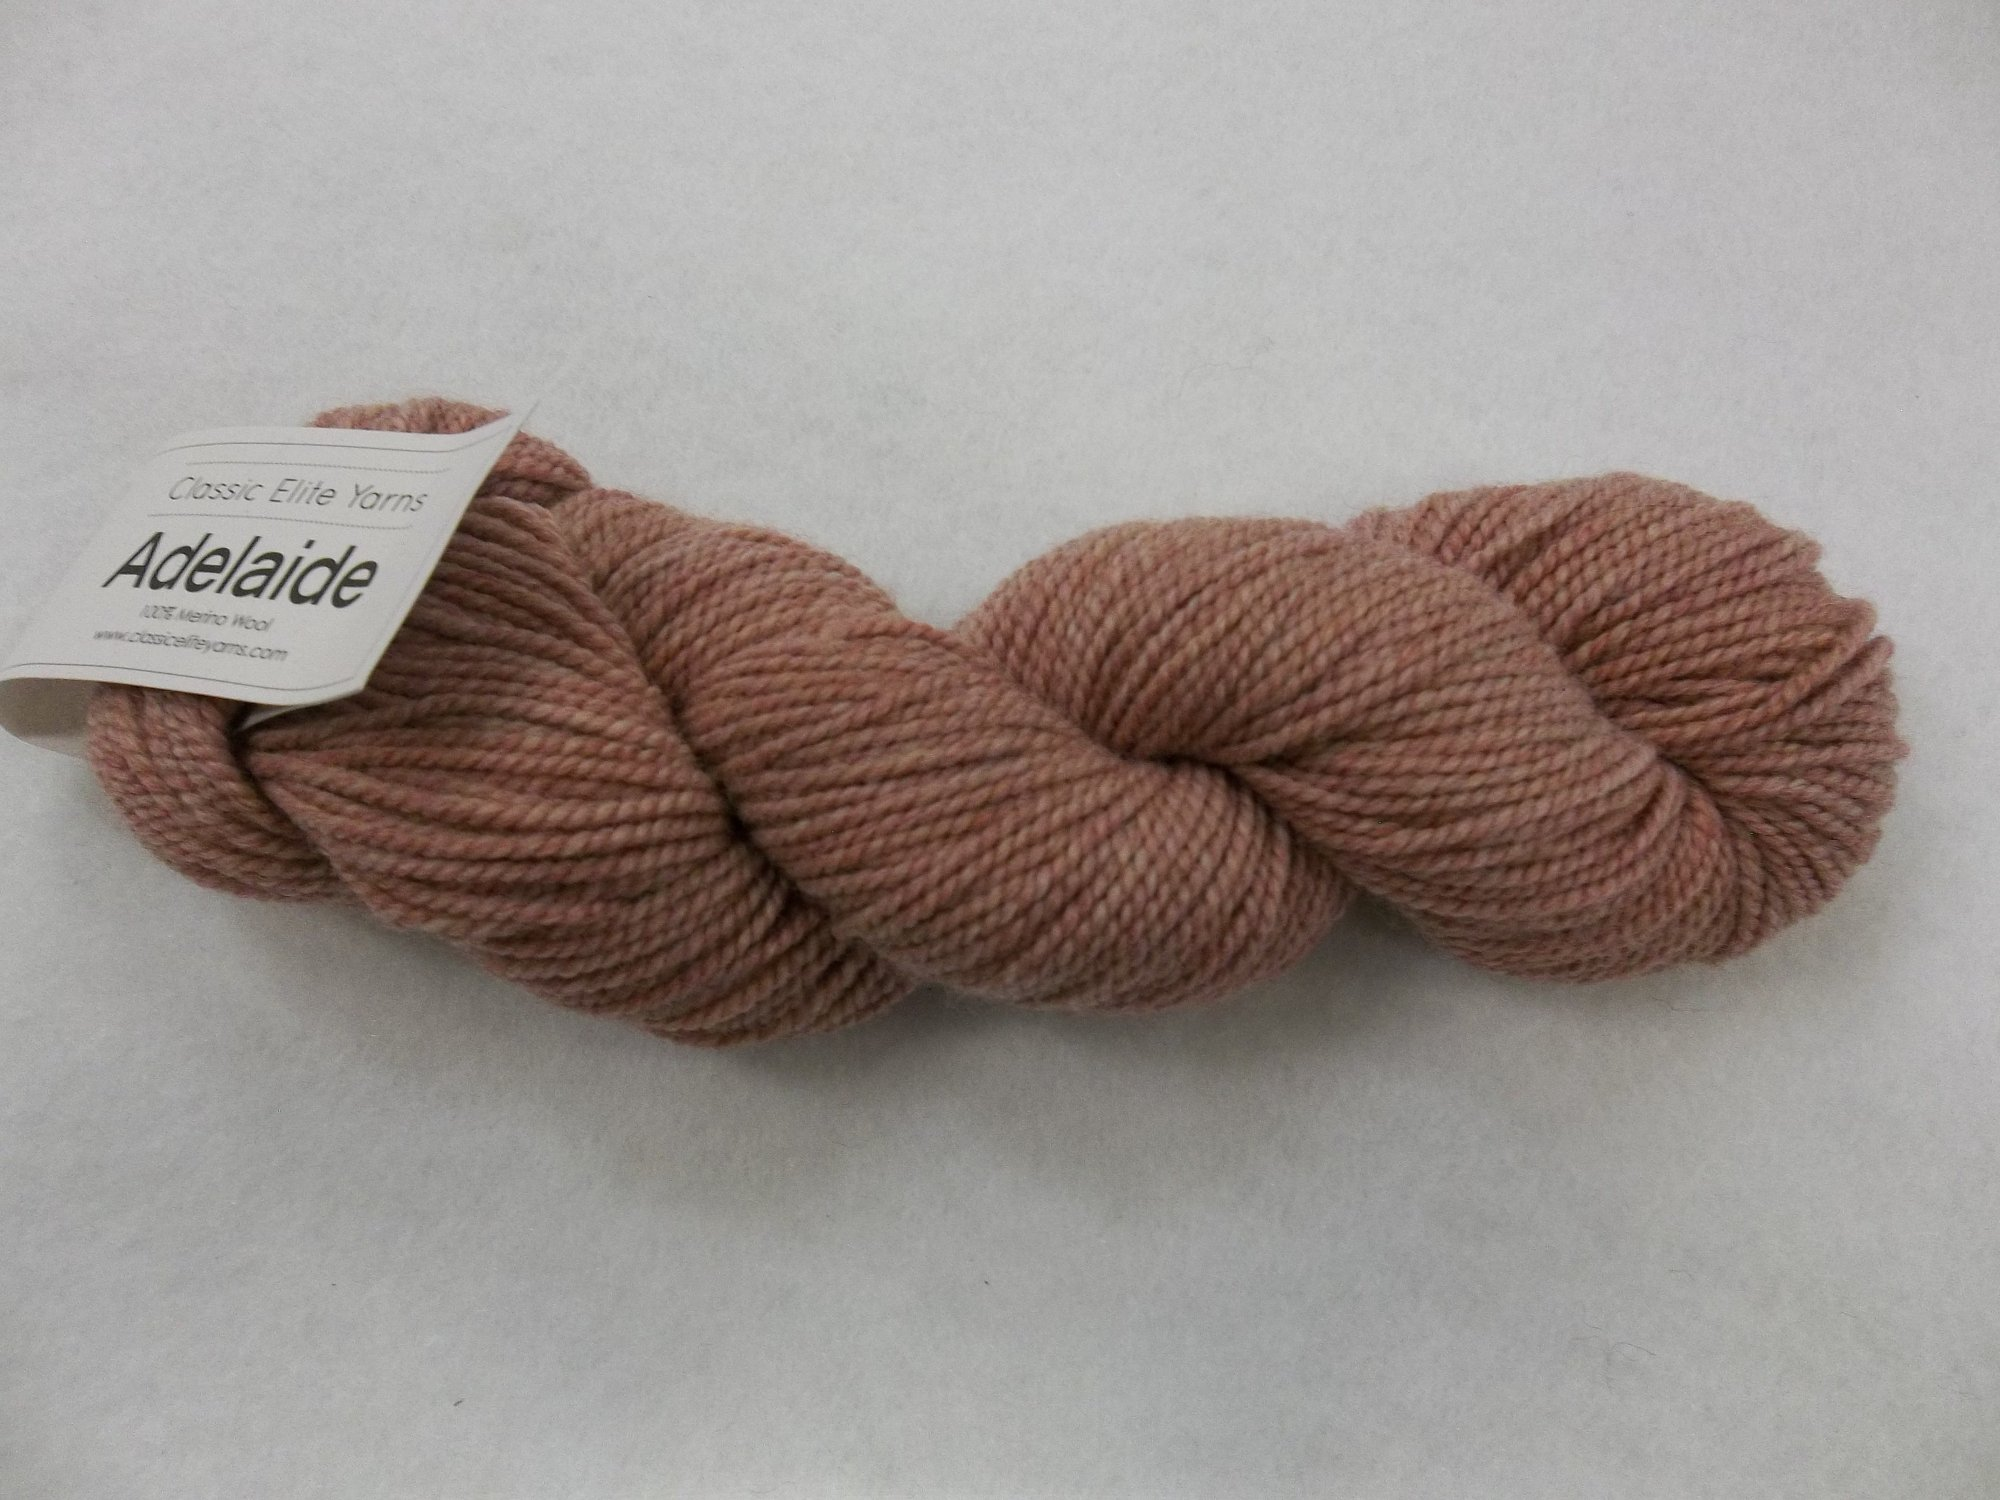 Adelaide Color 3625 - pale rose